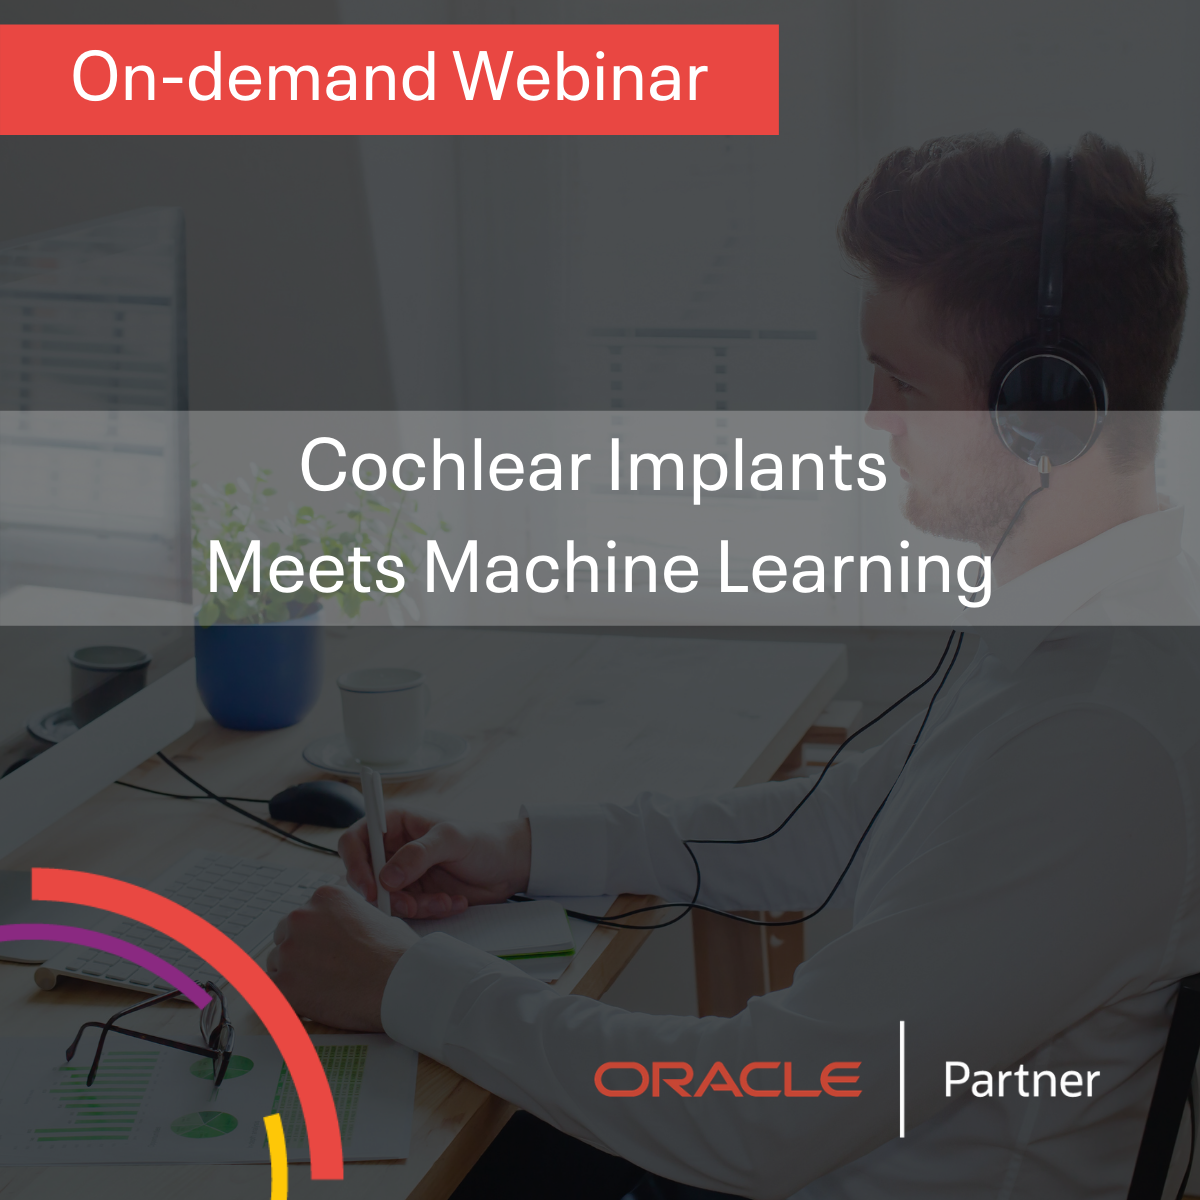 Cochlear Implants Meets Machine Learning